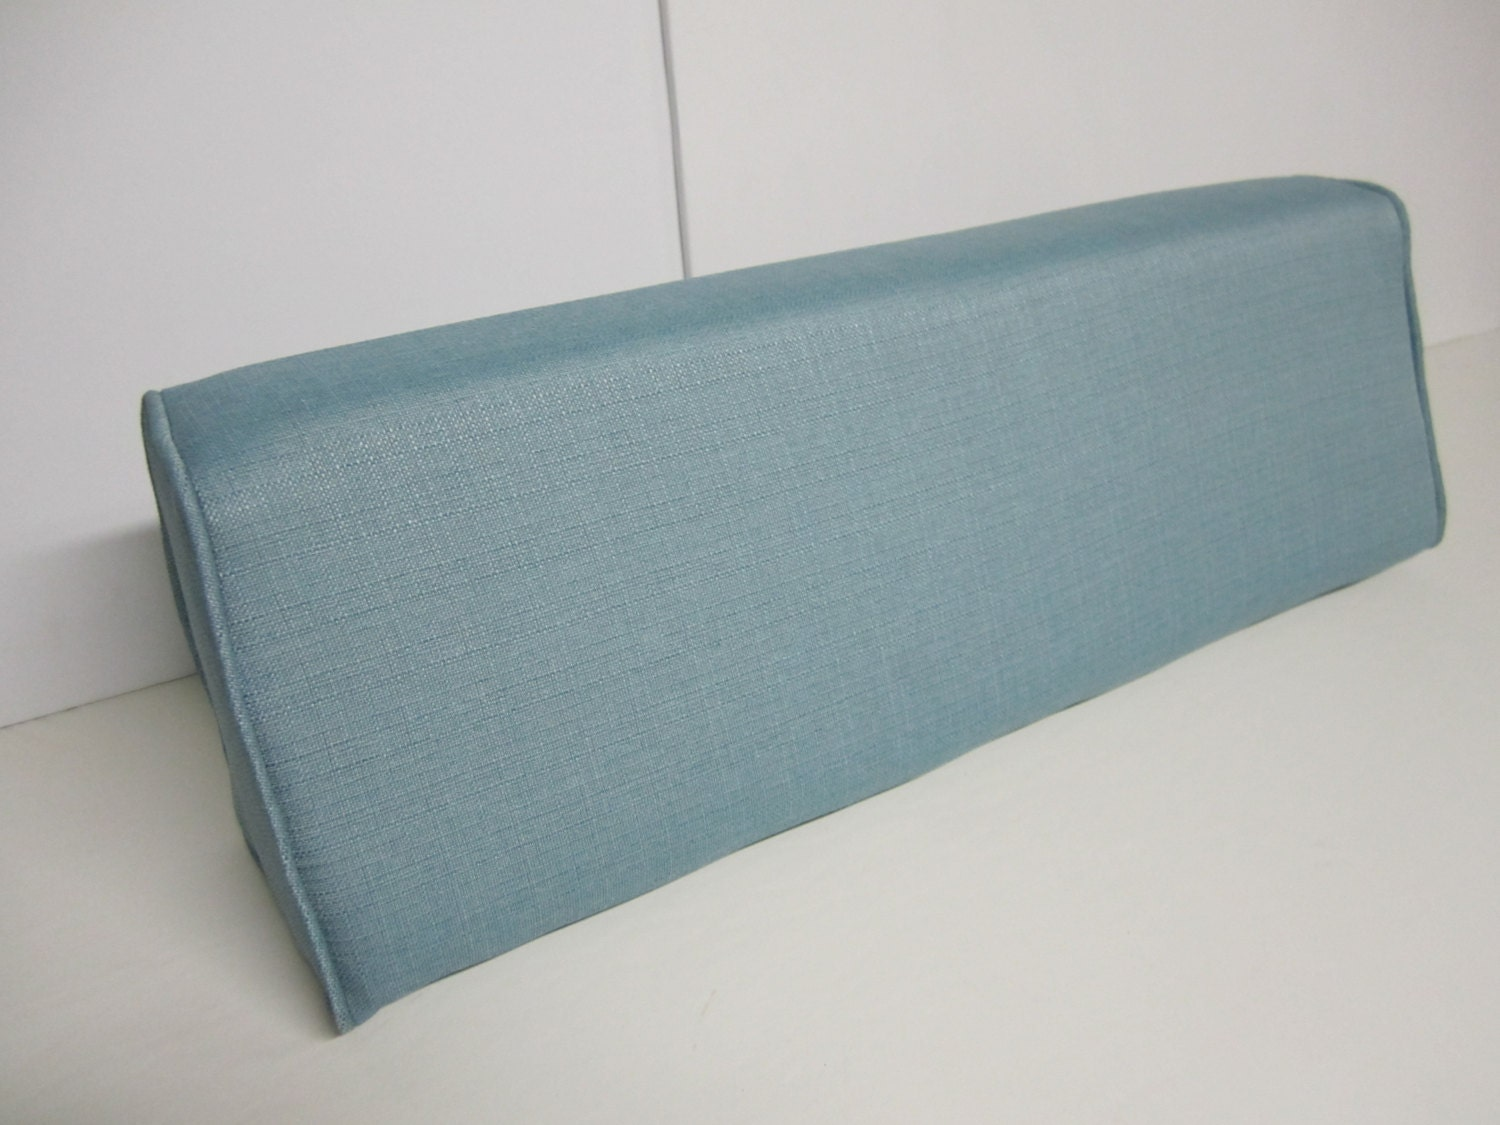 Daybed Wedge Bolster Foam and Cover Linen-Turquoise